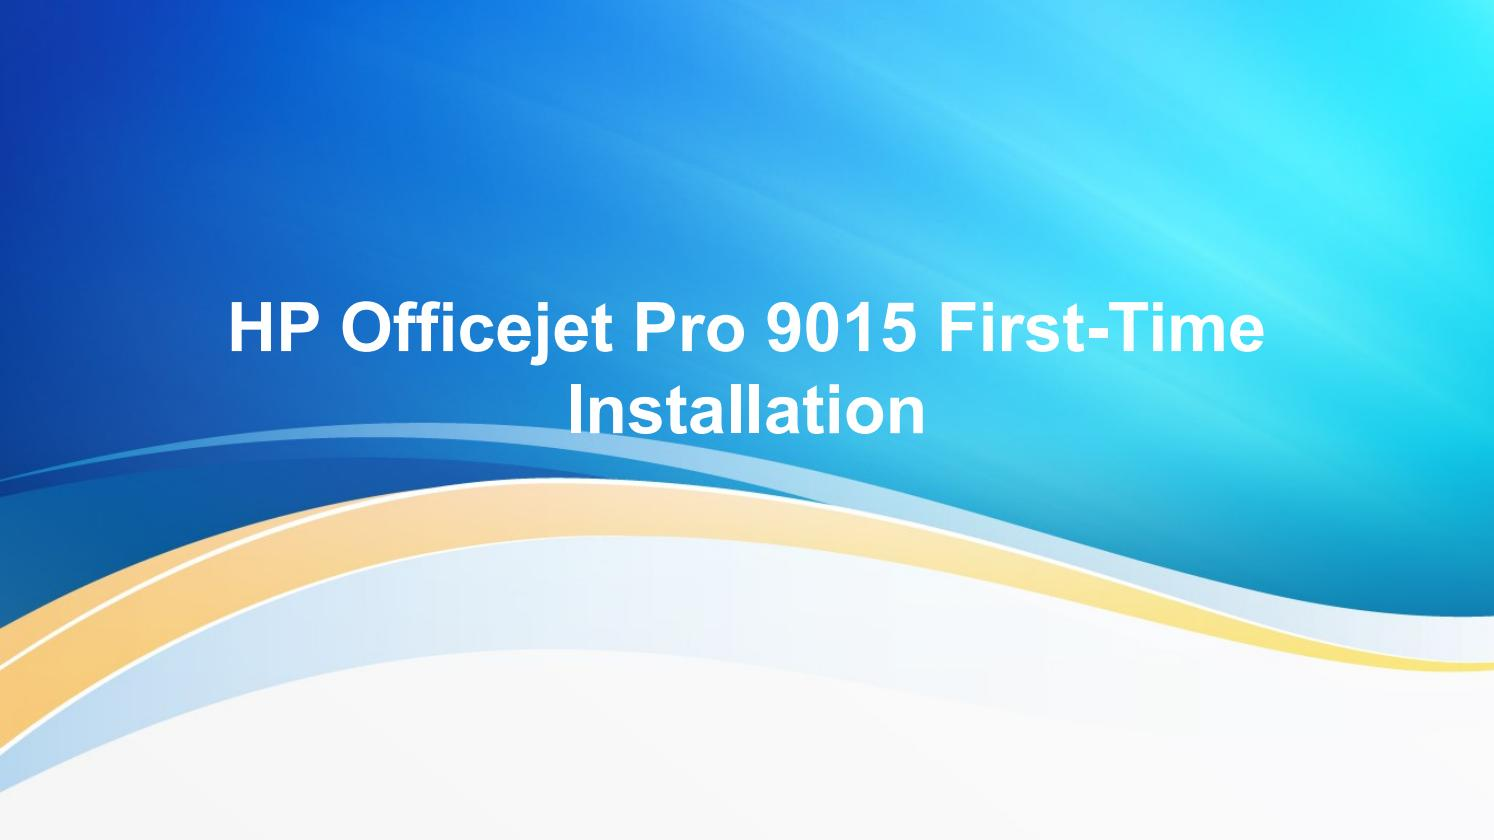 HP Officejet Pro 9015 First-Time Installation Guide by